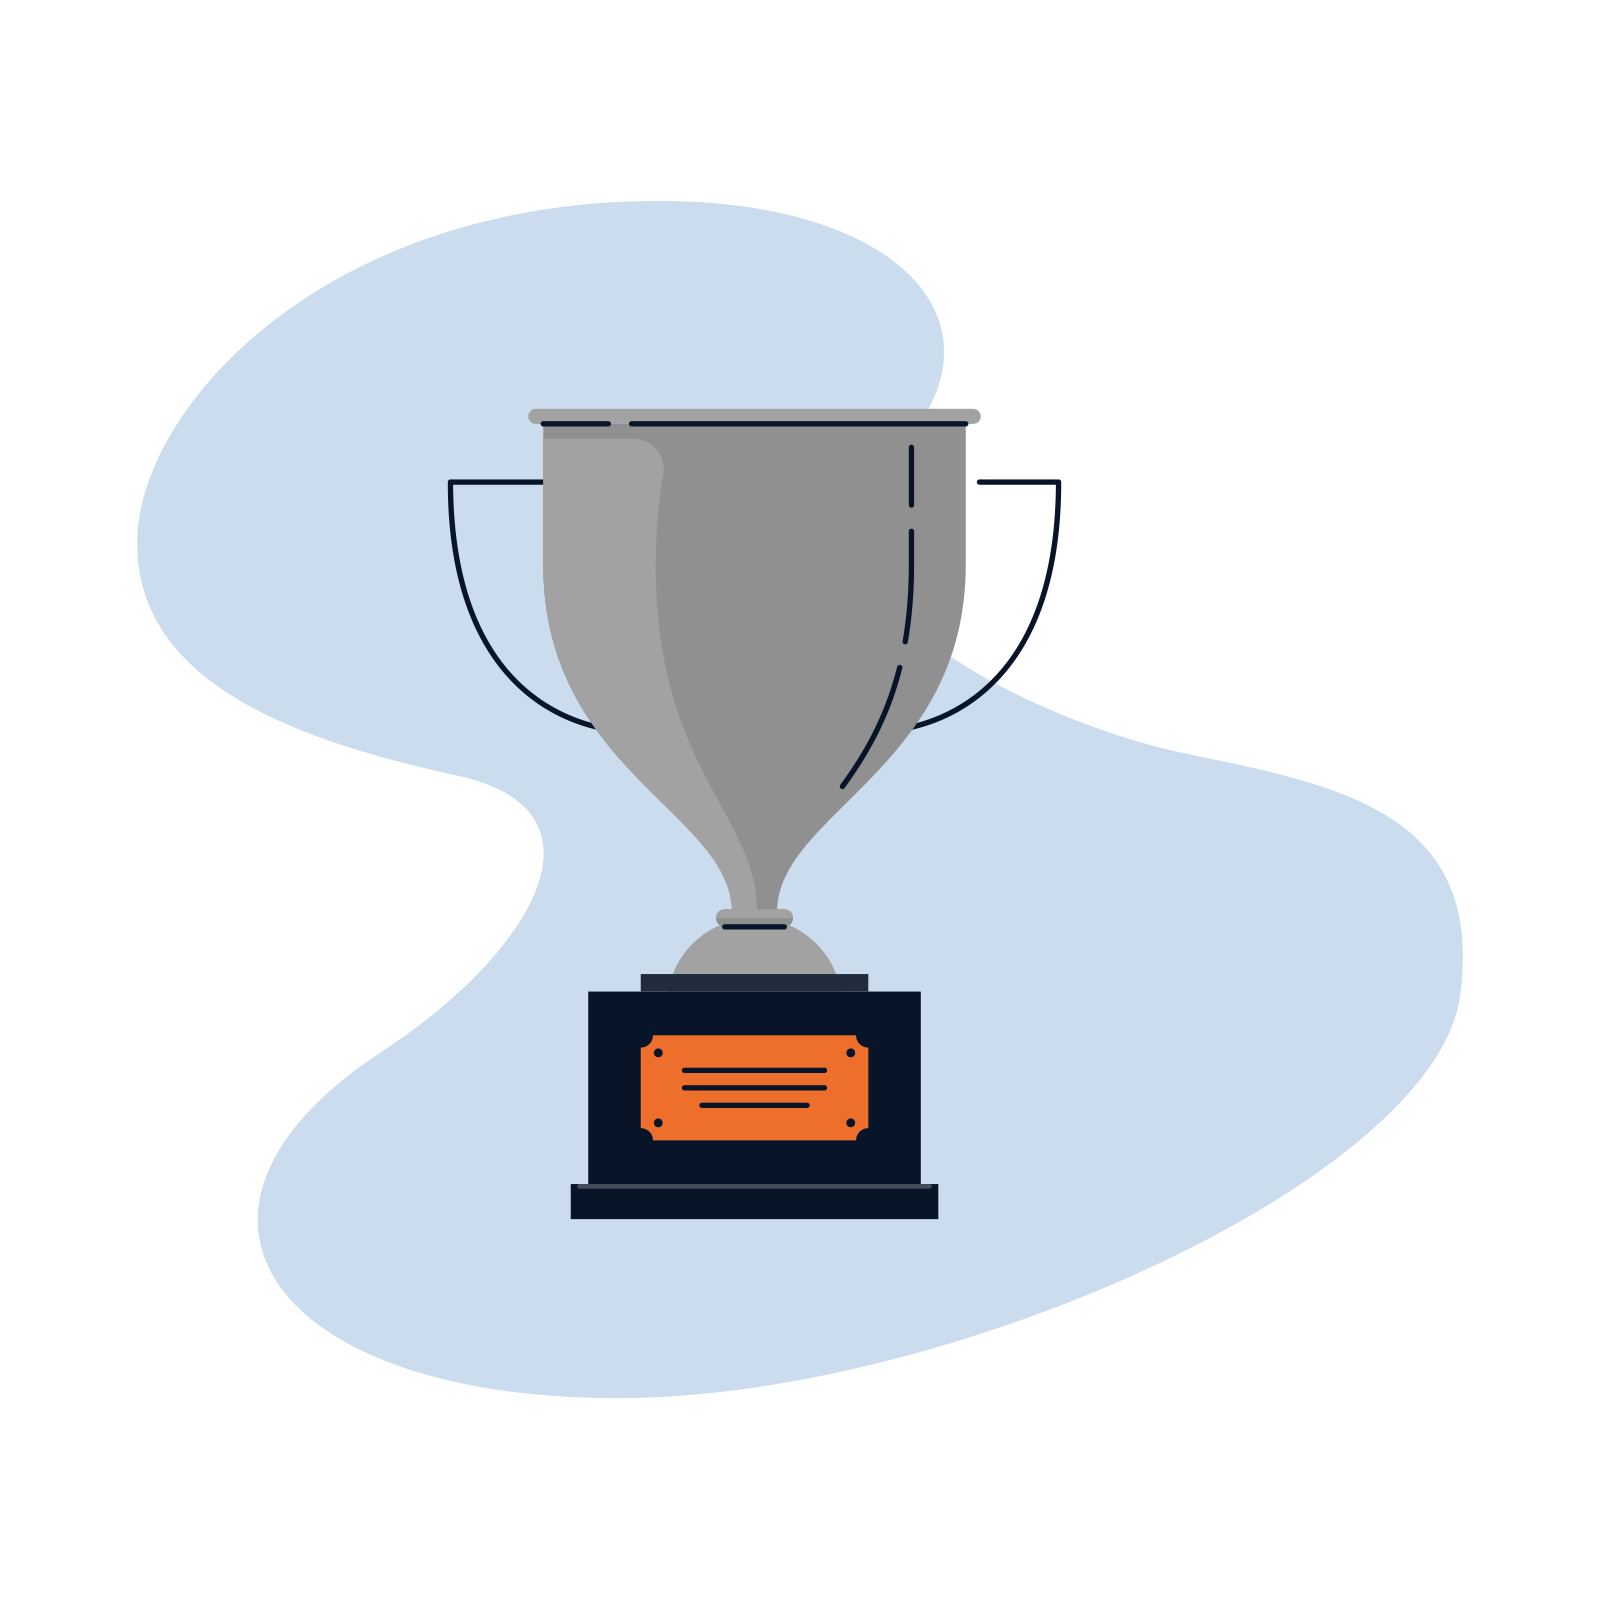 Trophy 01.png